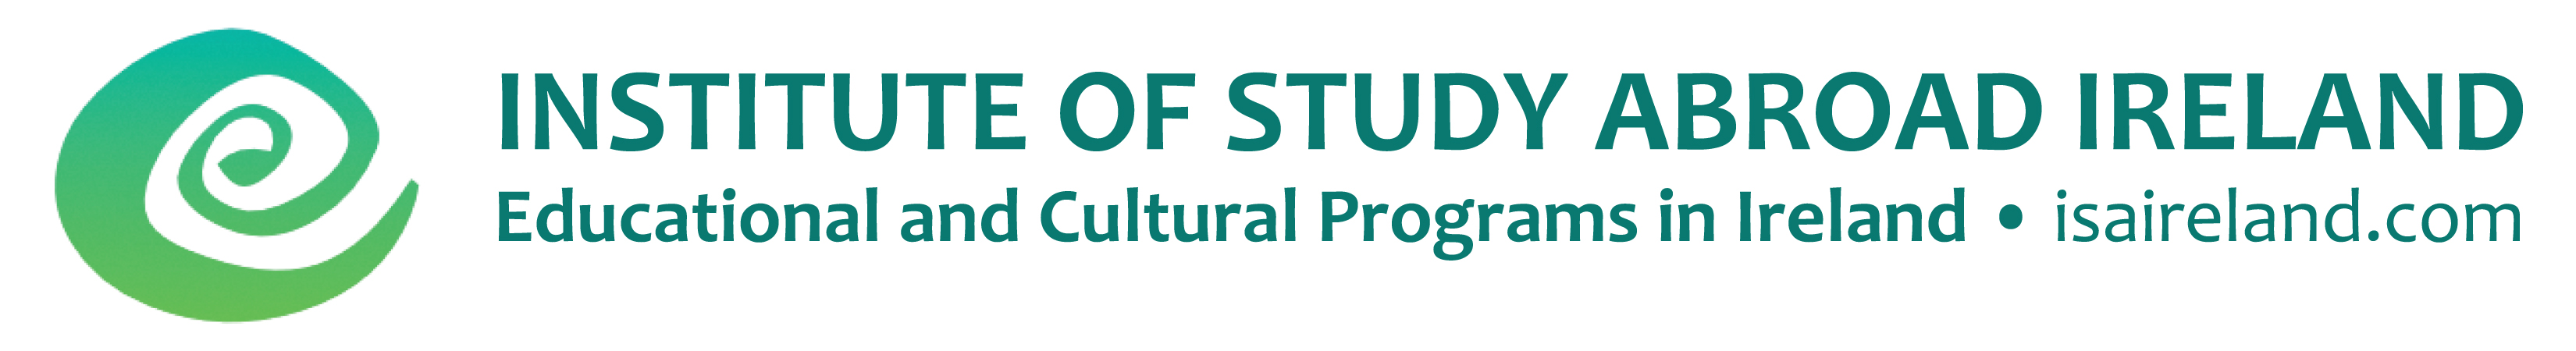 The Institute of Study Abroad Ireland specializes in arranging short-term faculty led trips for Community Colleges providing a full and inclusive program for students at very affordable prices. Many CCID member institutions have visited Ireland on our site visits, and over 14 community college groups visited Ireland in 2016.